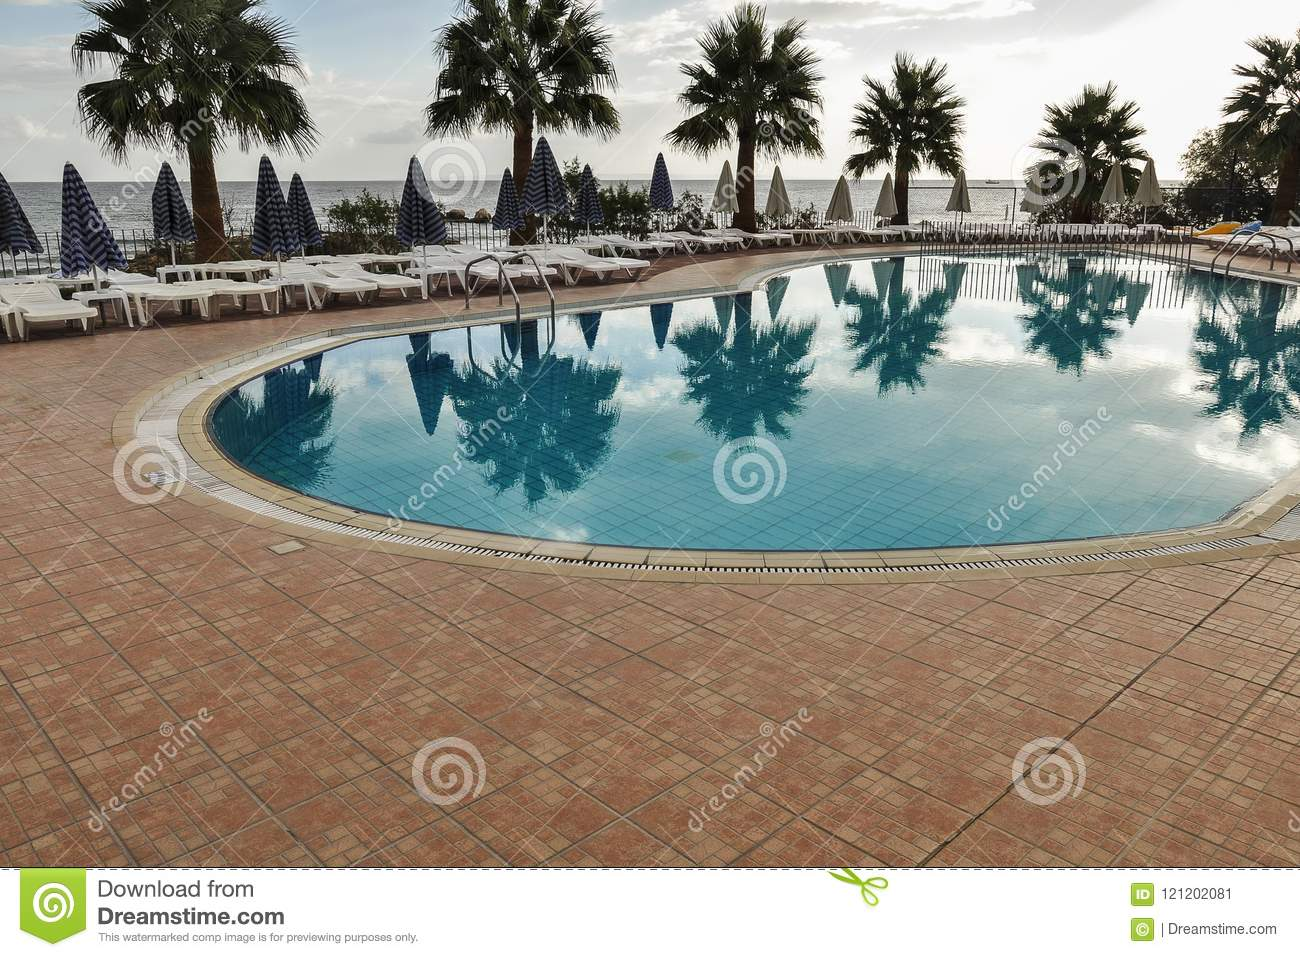 Empty Sunbeds And Swimming Pools With Palms Around. Stock ...